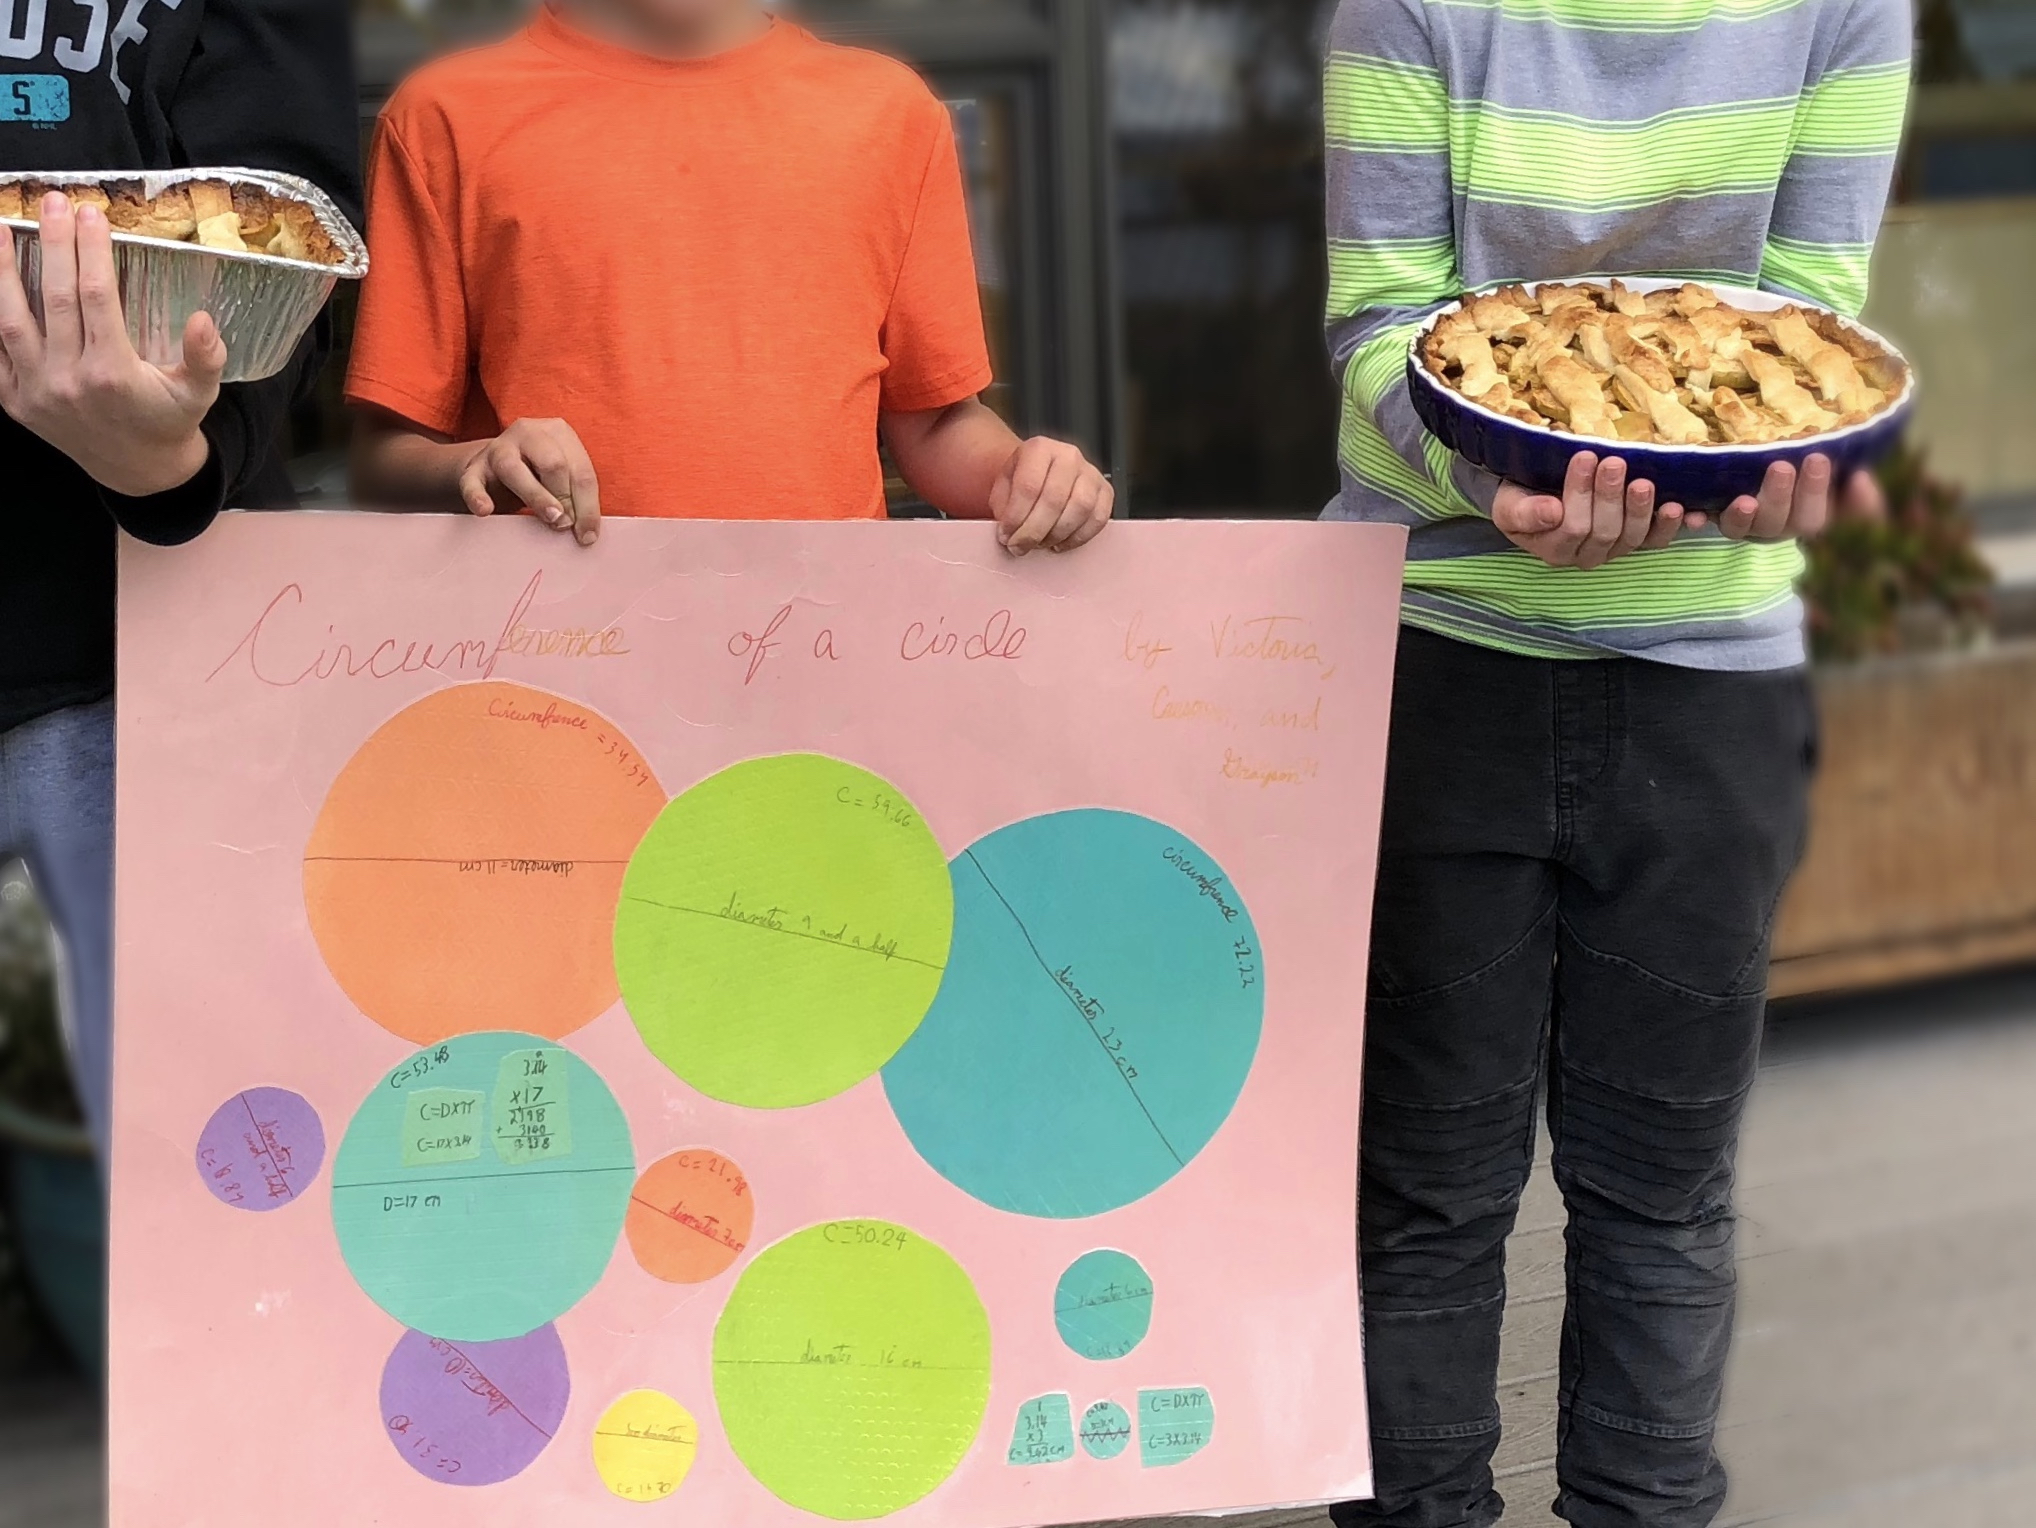 And these guys baked apple pies on Pi Day after learning how to calculate the circumference of a circle!